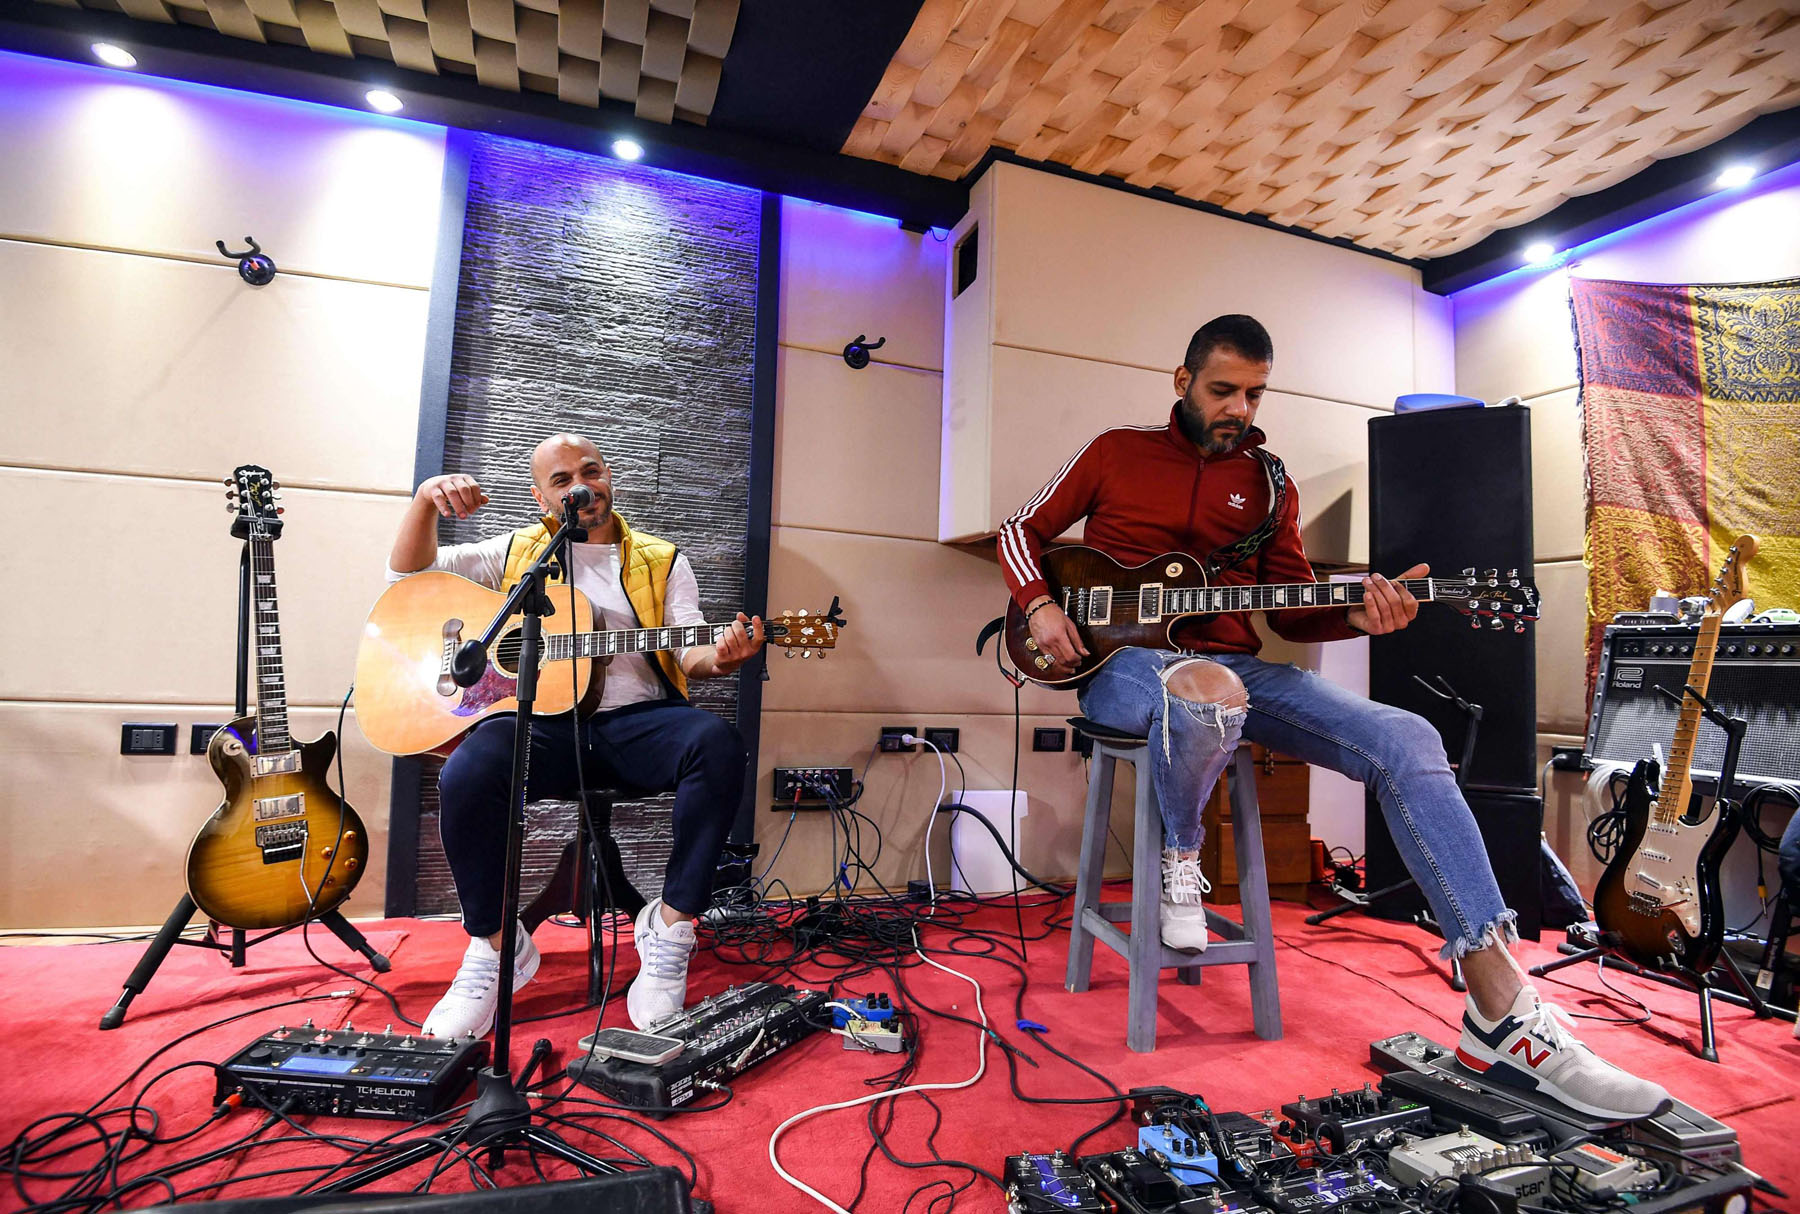 Hani El Dakkak (L), lead singer and guitarist, and Mahmoud Siam, guitarist for Egyptian rock band Massar Egbari, warm up in a recording studio in Cairo. 			    (AFP)